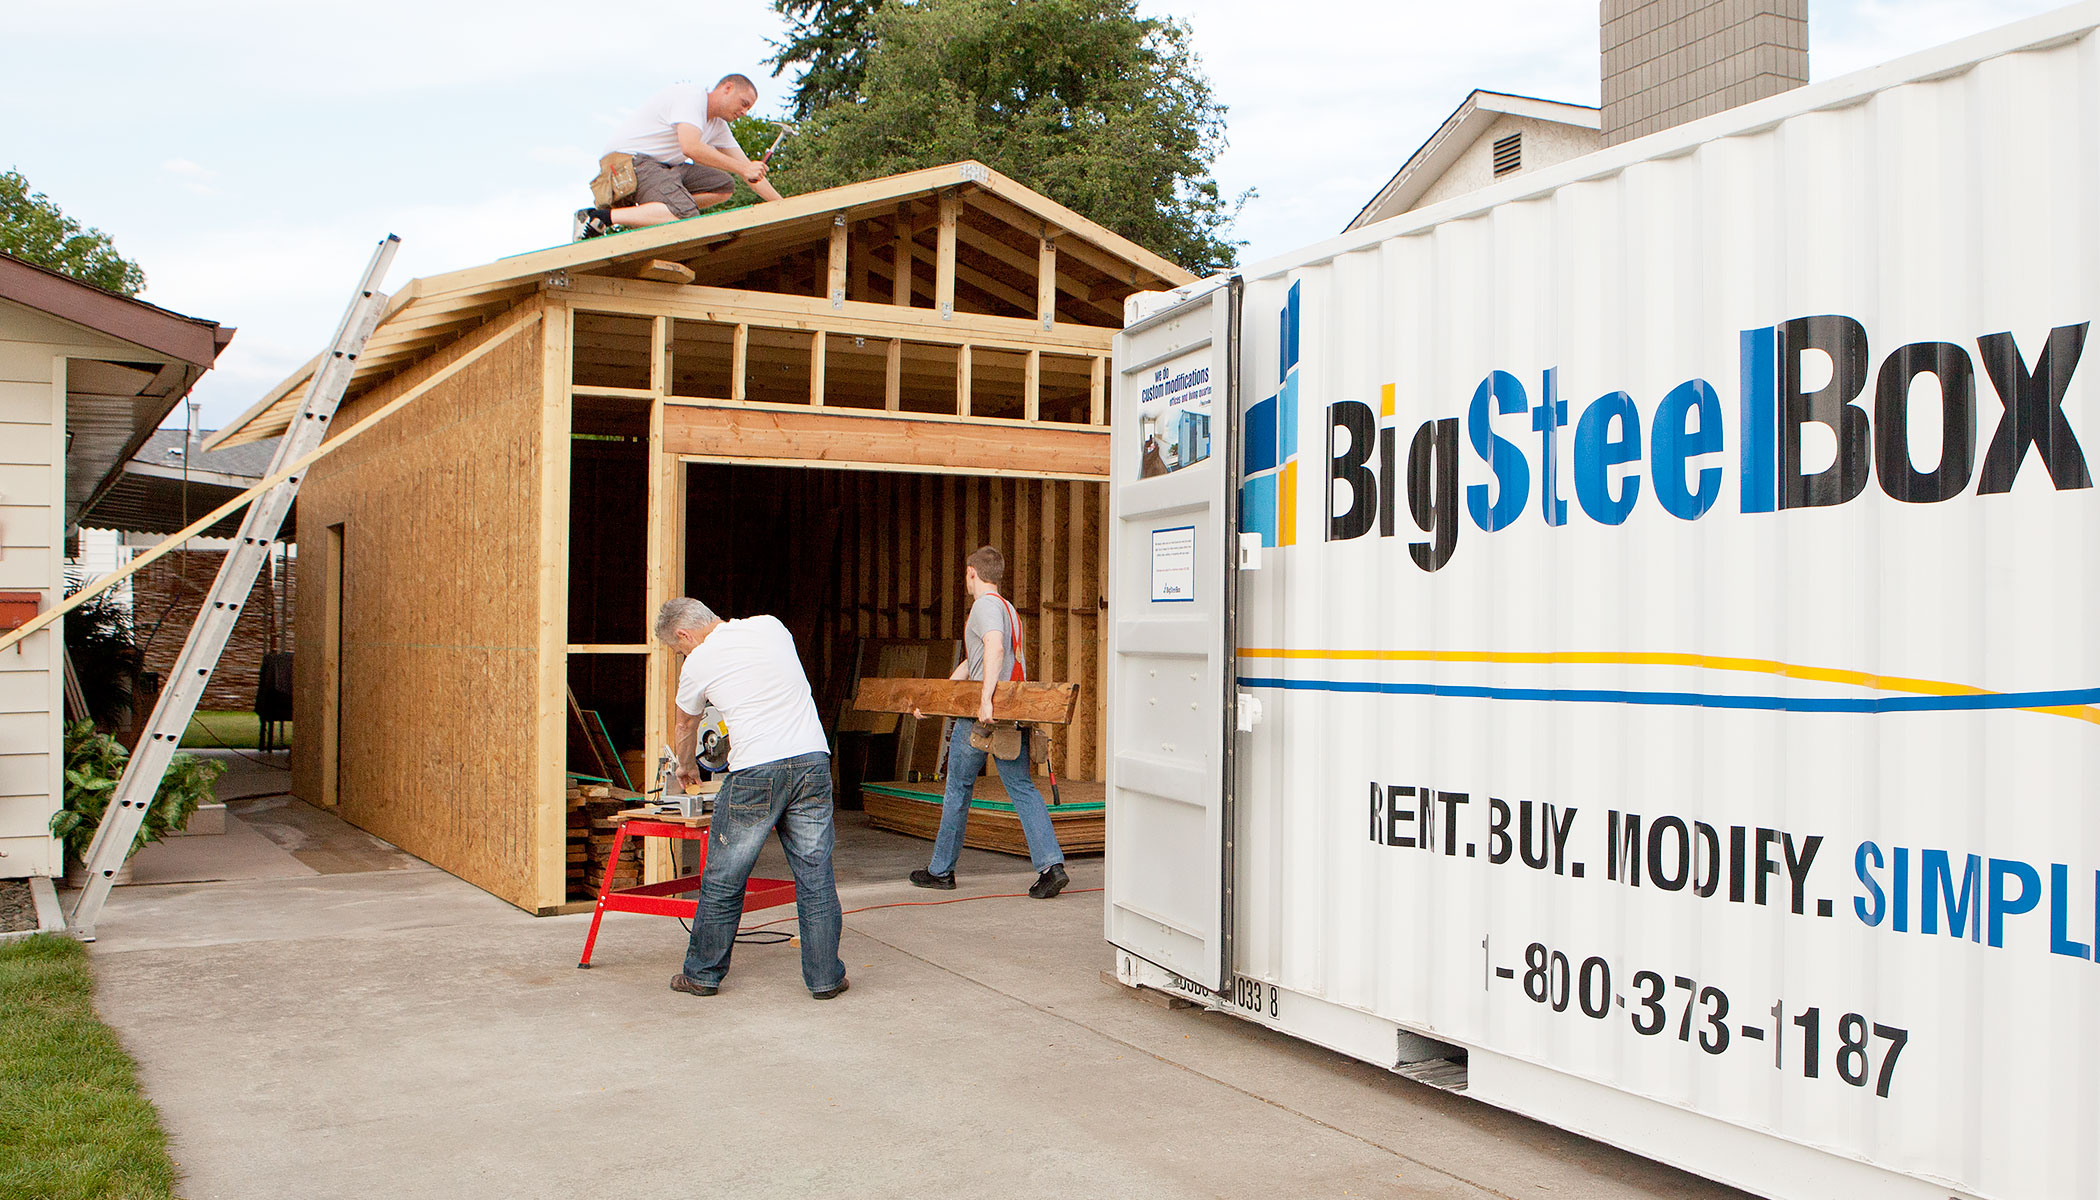 Storage during home renovations - BigSteelBox